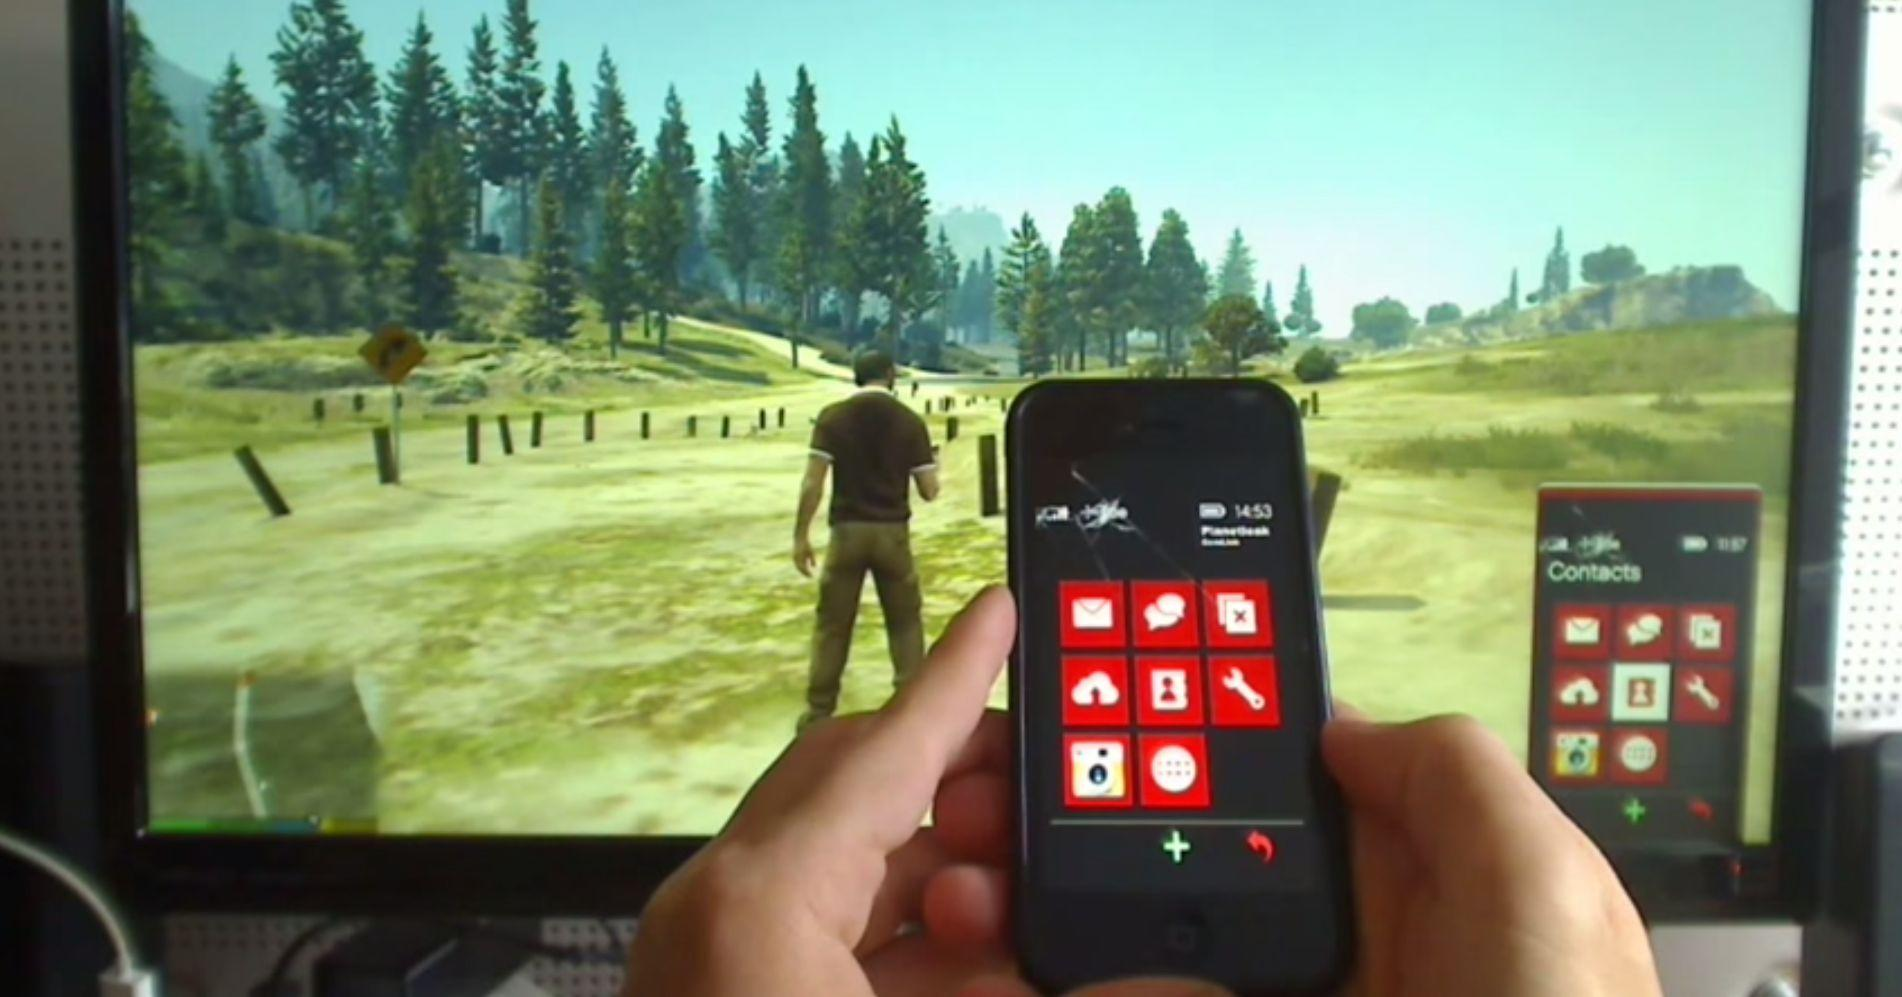 GTA 5's In-Game Phone Works With This Modder's iPhone App